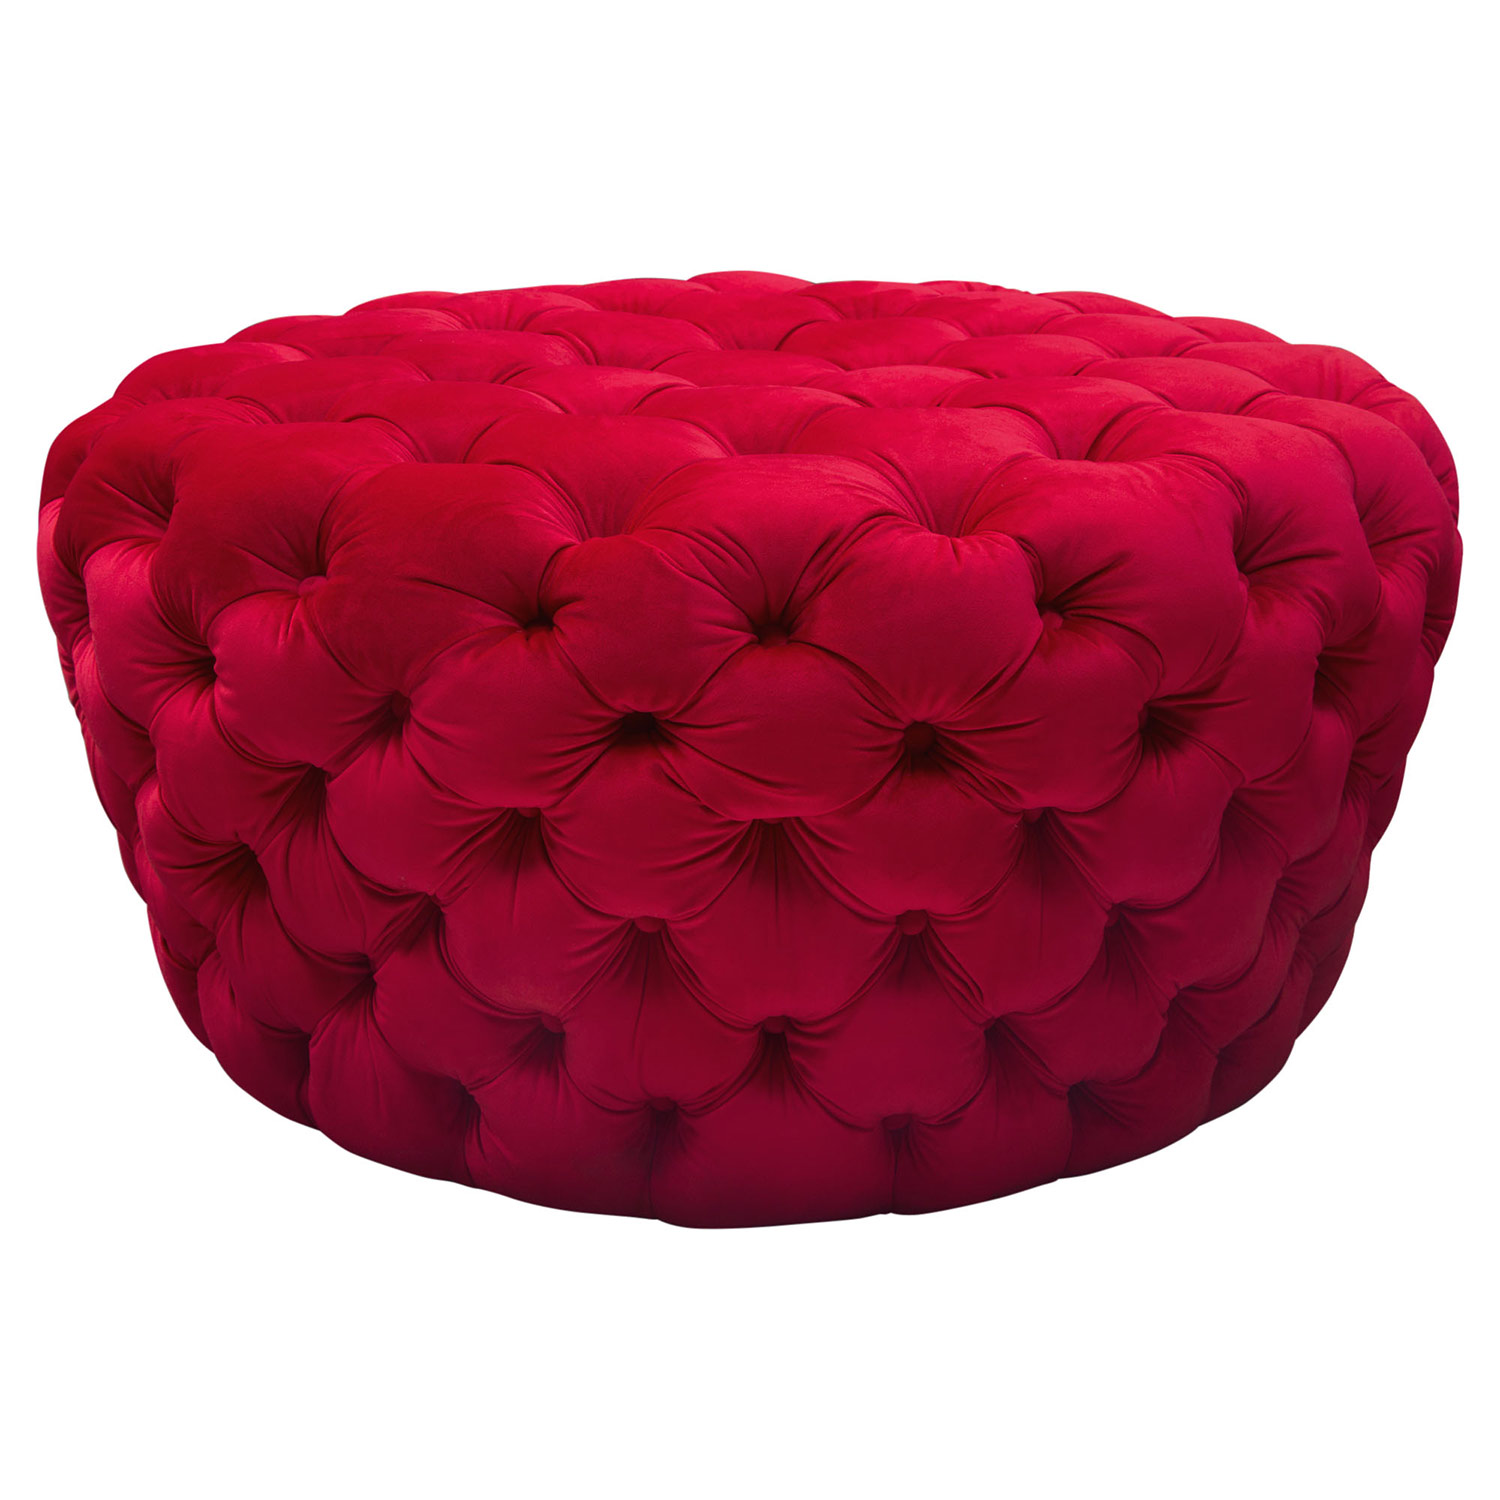 Posh All Over Tufted Round Ottoman in Red Velvet by Diamond Sofa